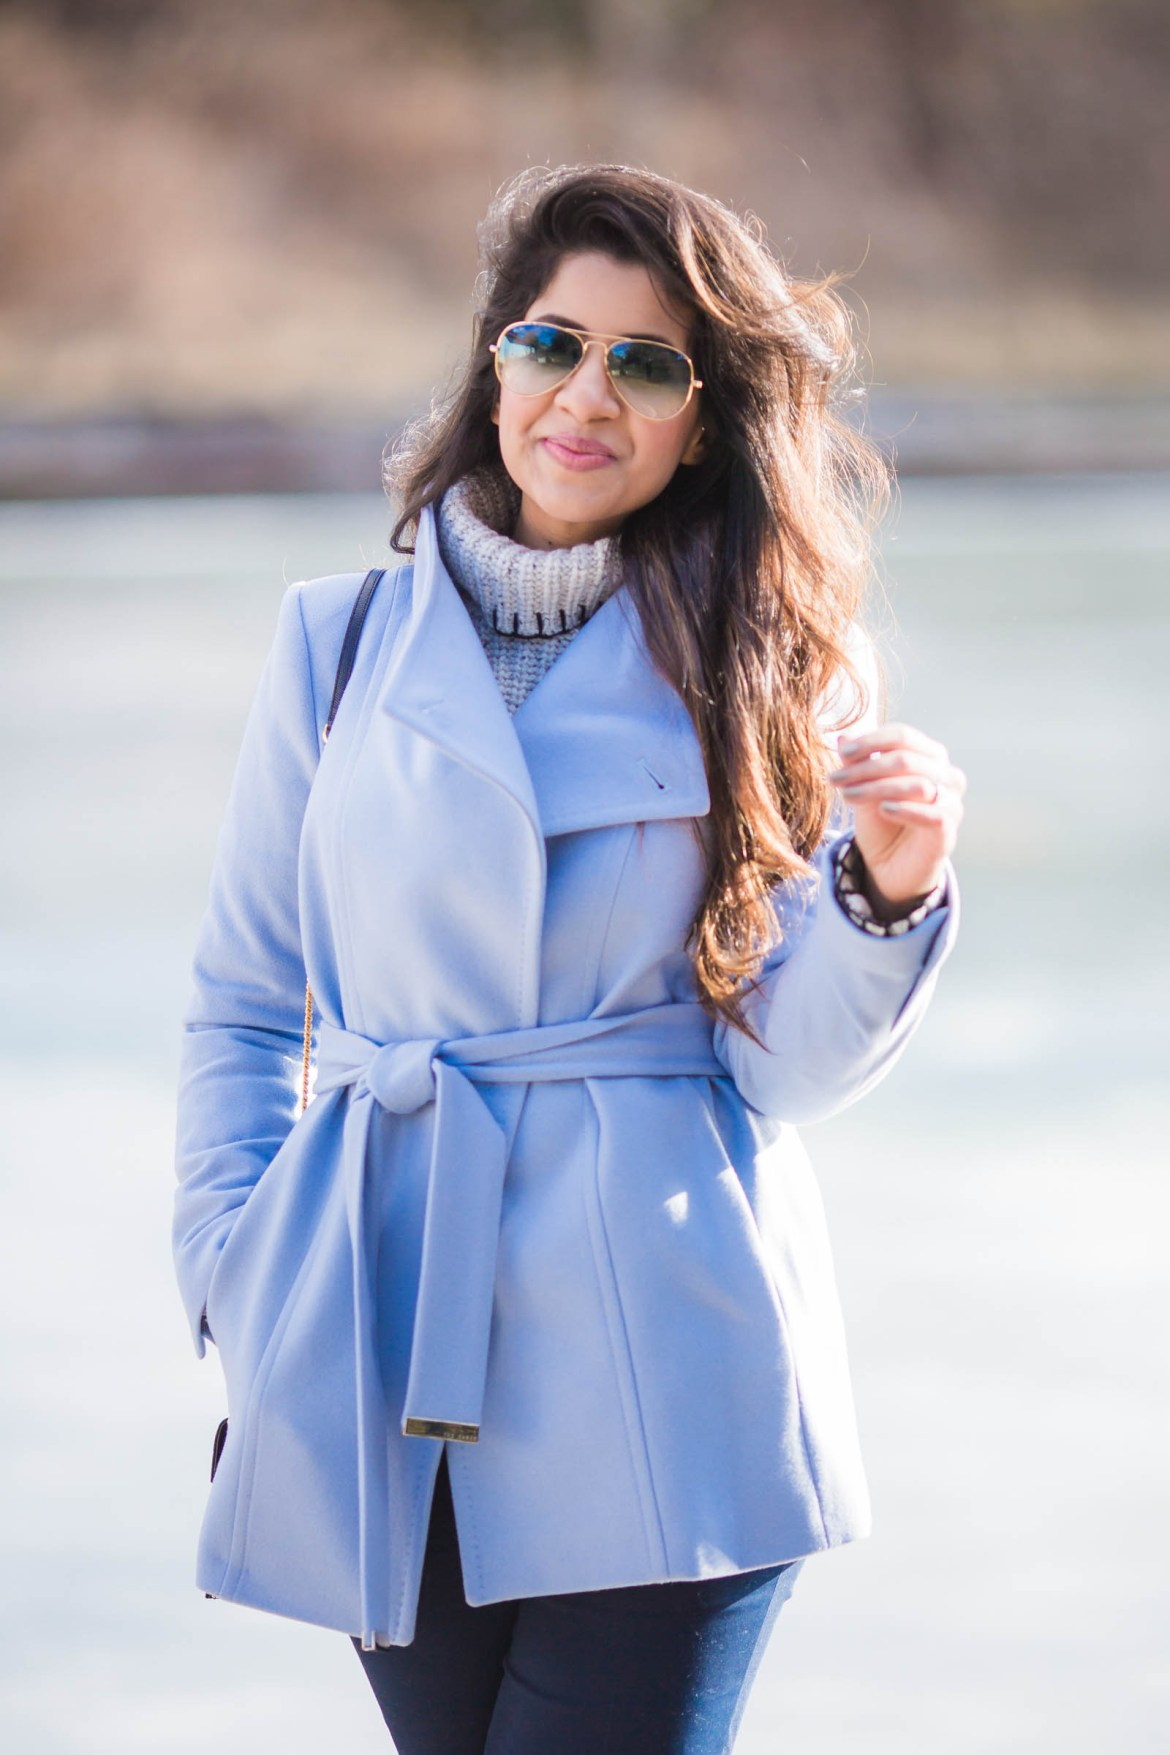 sky-blue-pea-coat-ted-baker-ysl-zara-wide-leg-pants-ray-ben-cold-spring-fashion-blogger-stylist-2